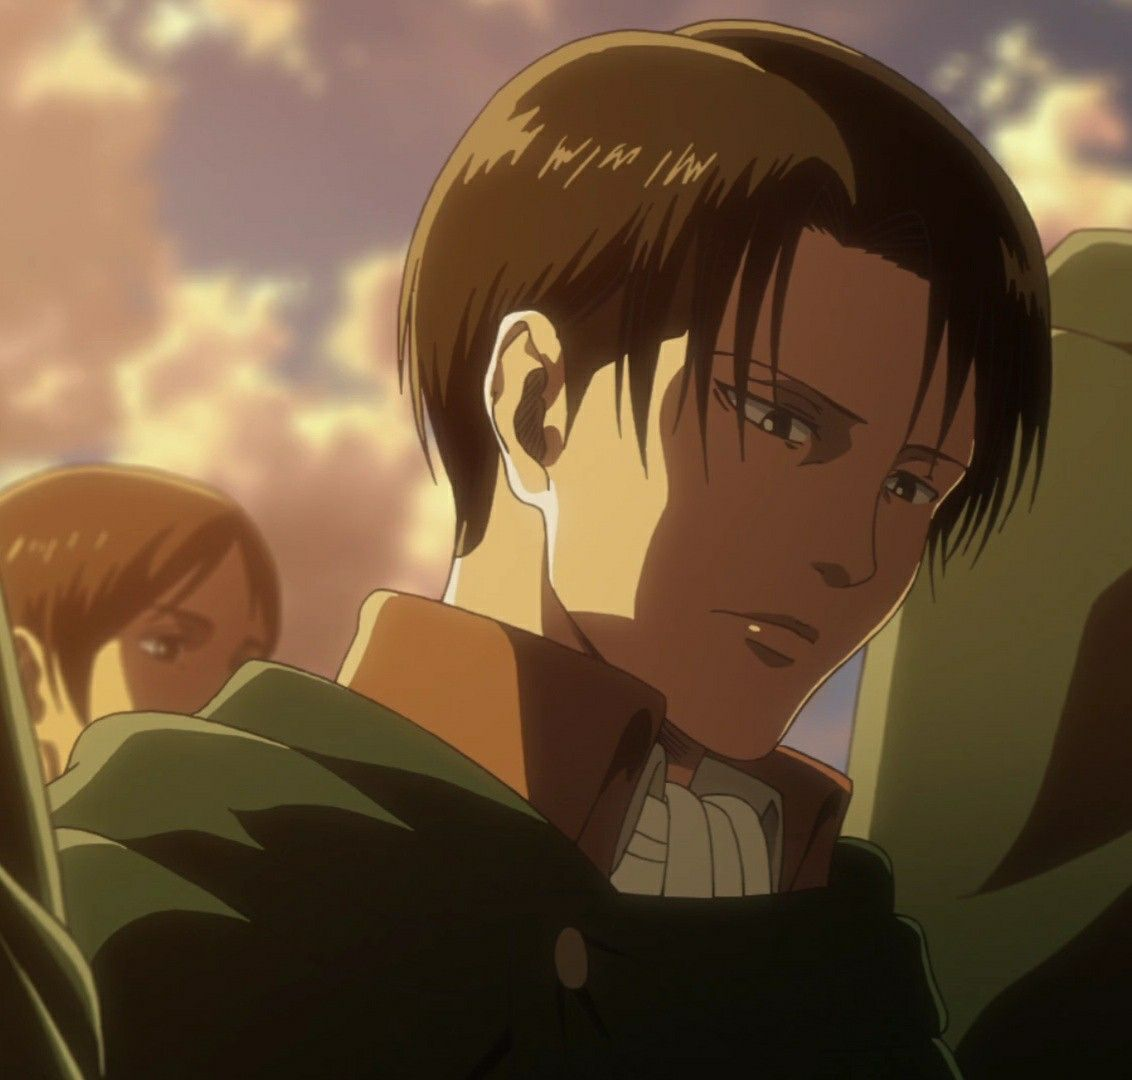 Can I Just Say That He Looks So Freak N Cute And Hot Attack On Titan Levi Levi Ackerman Captain Levi